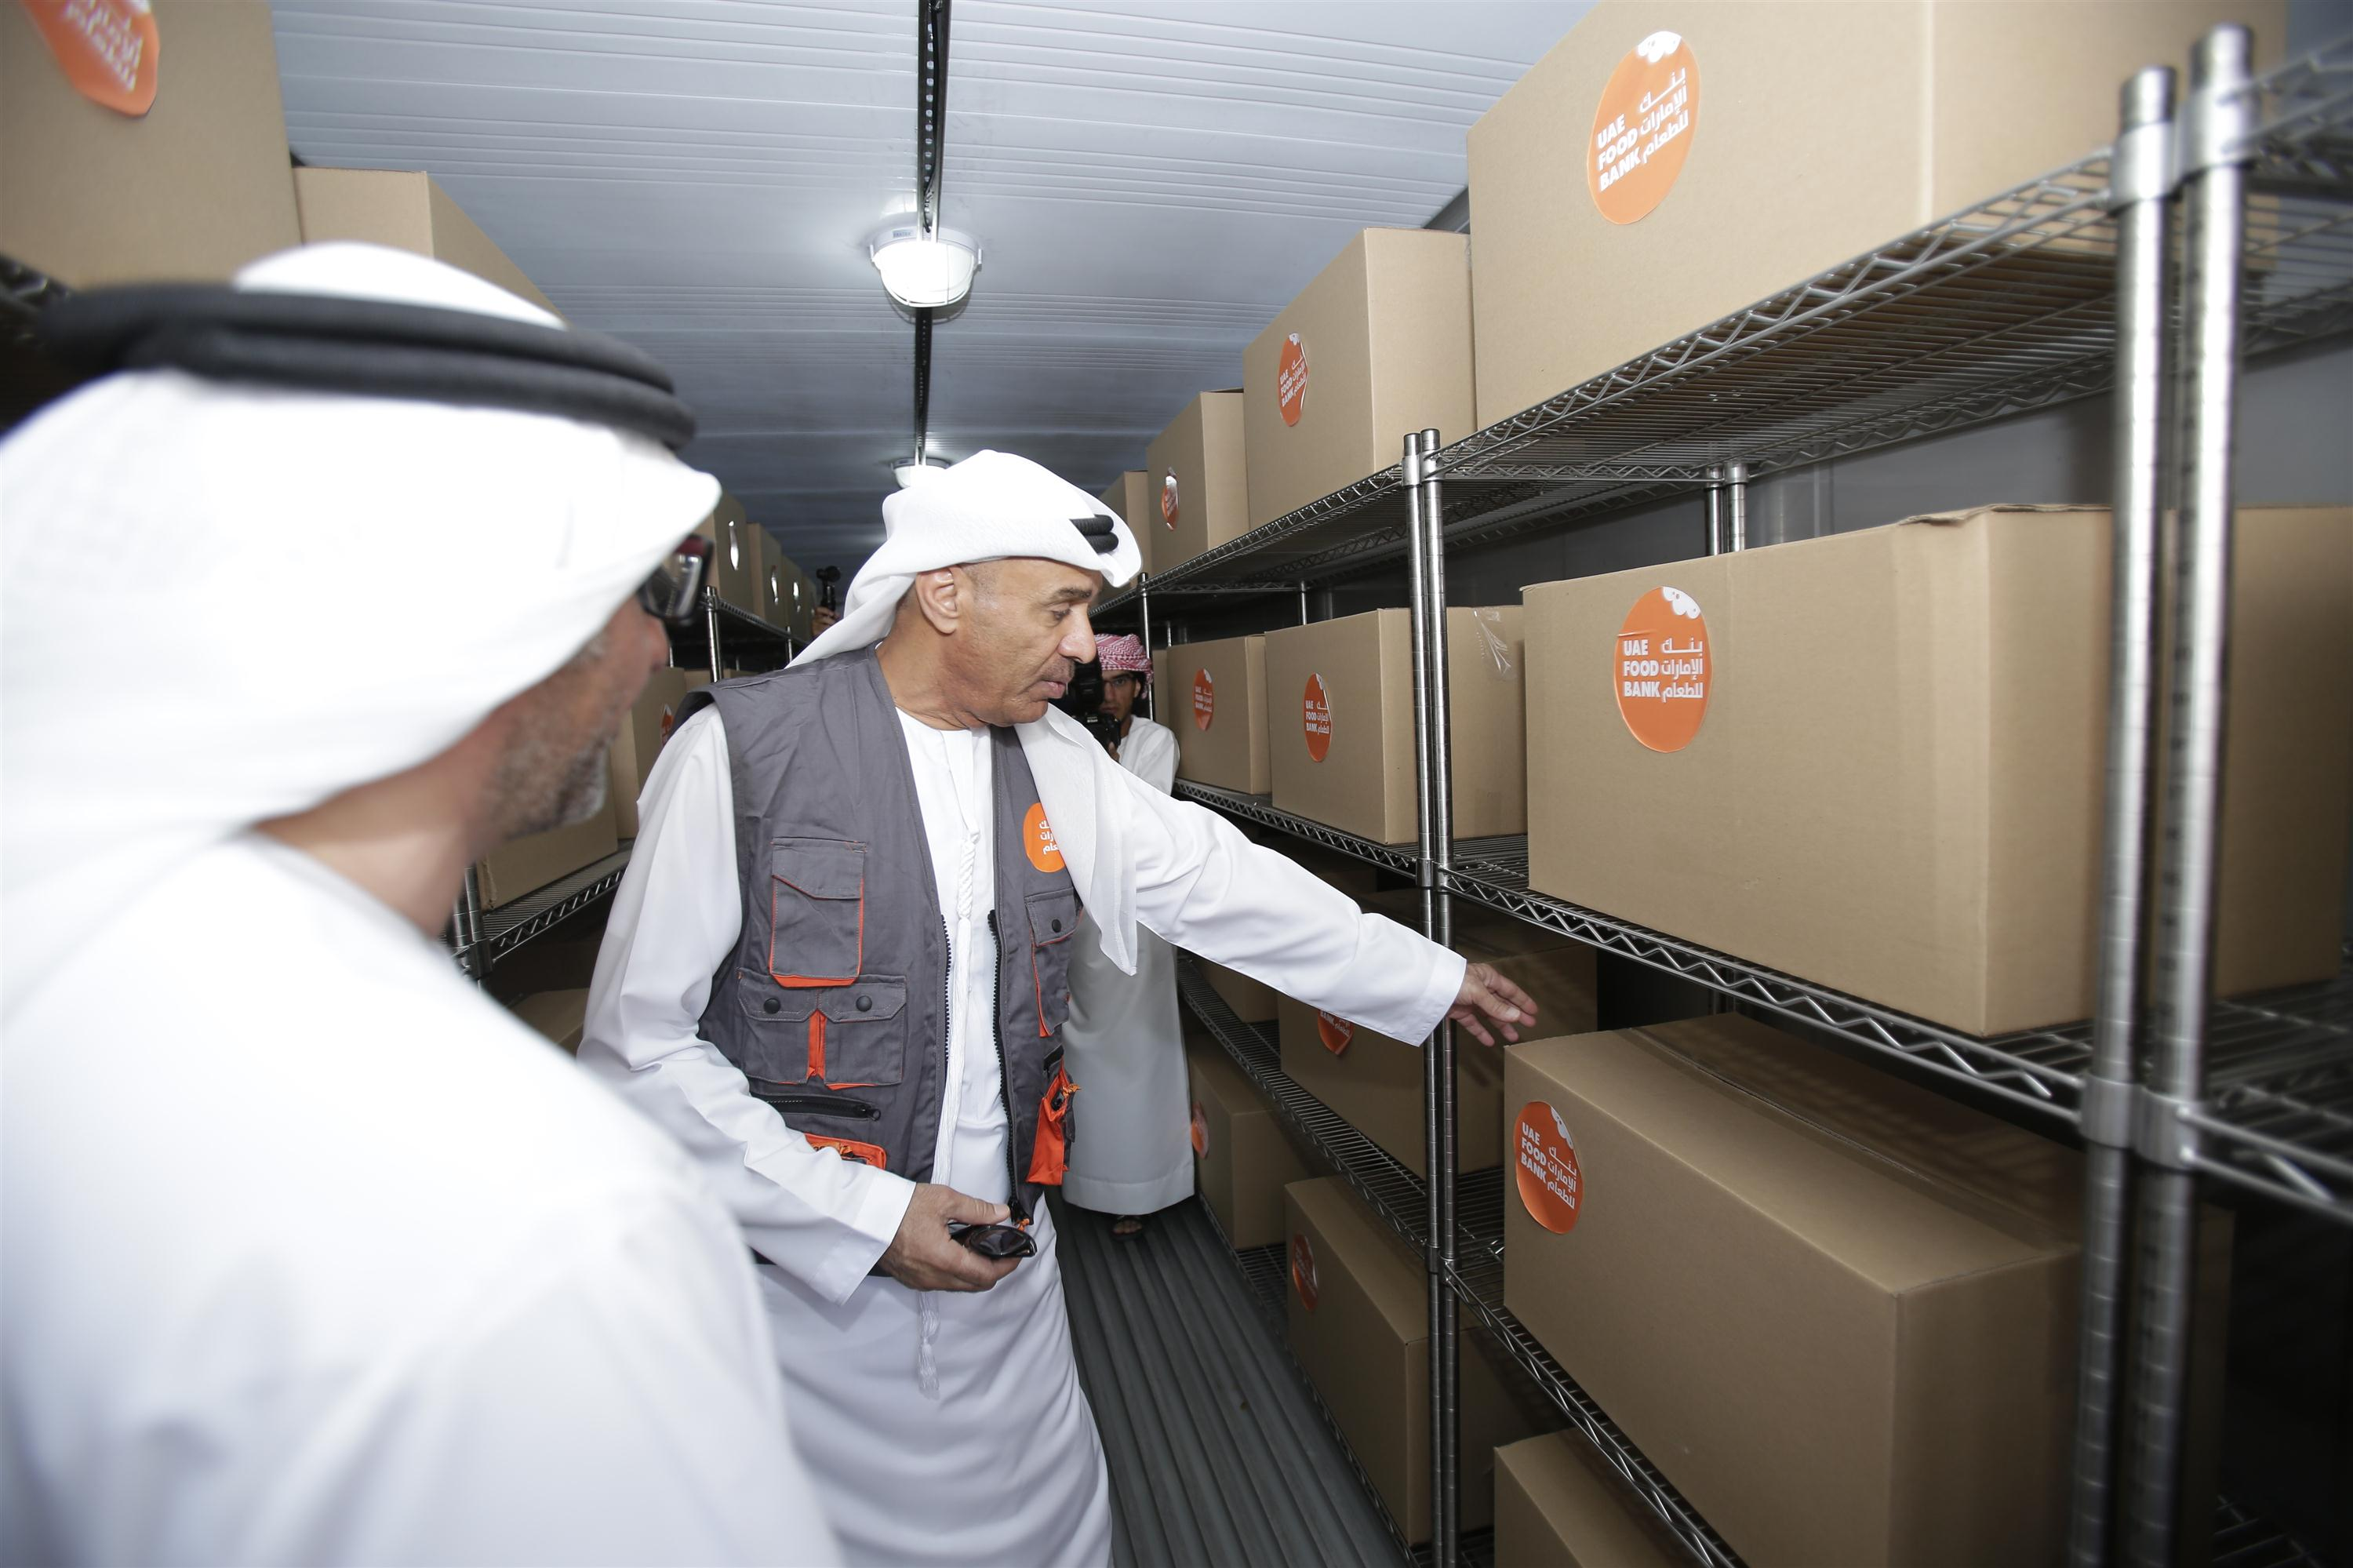 dubai municipality opens first uae foodbank branch1.jpg